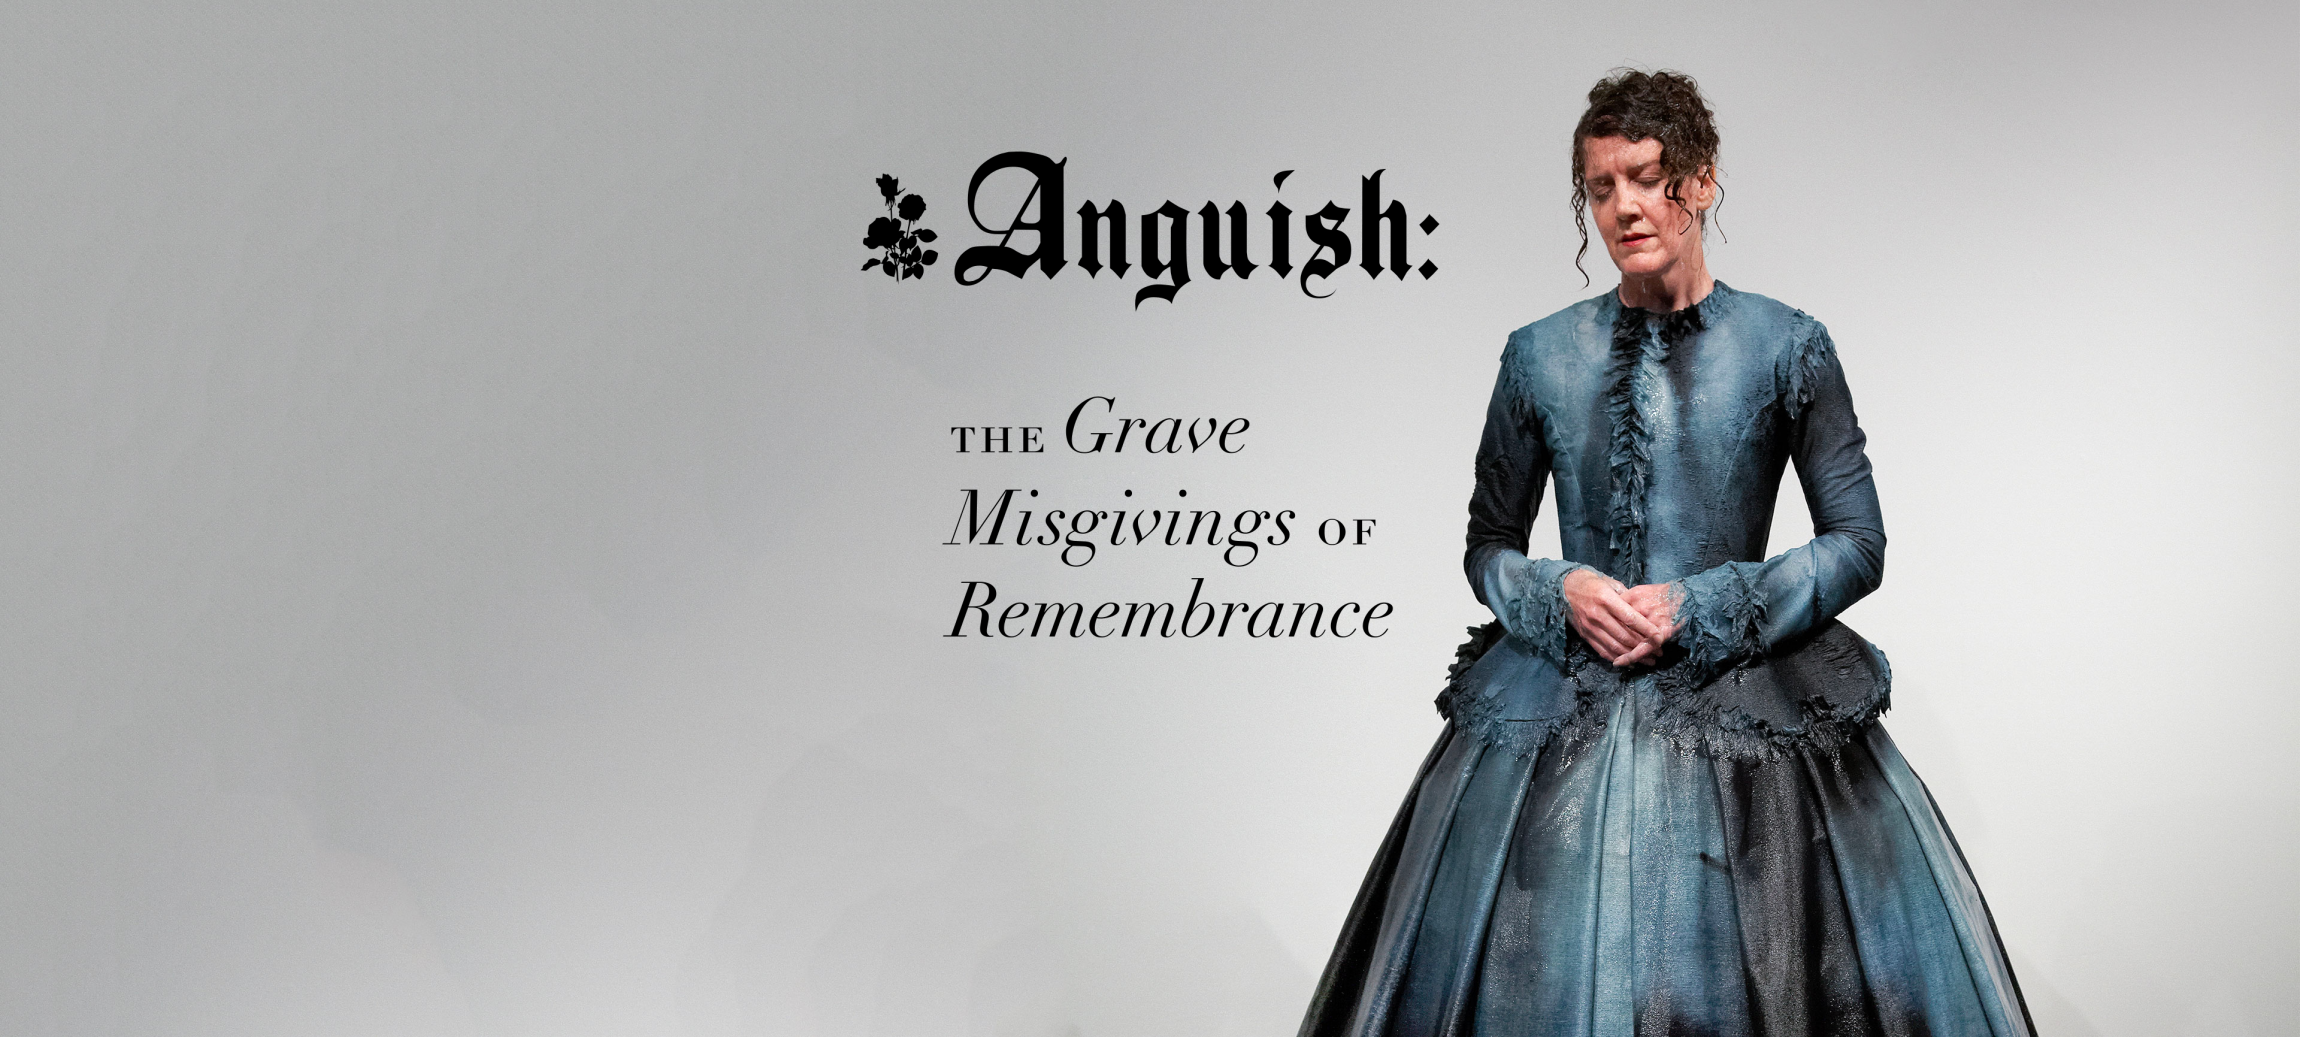 Anguish: The Grave Misgivings of Remembrance image